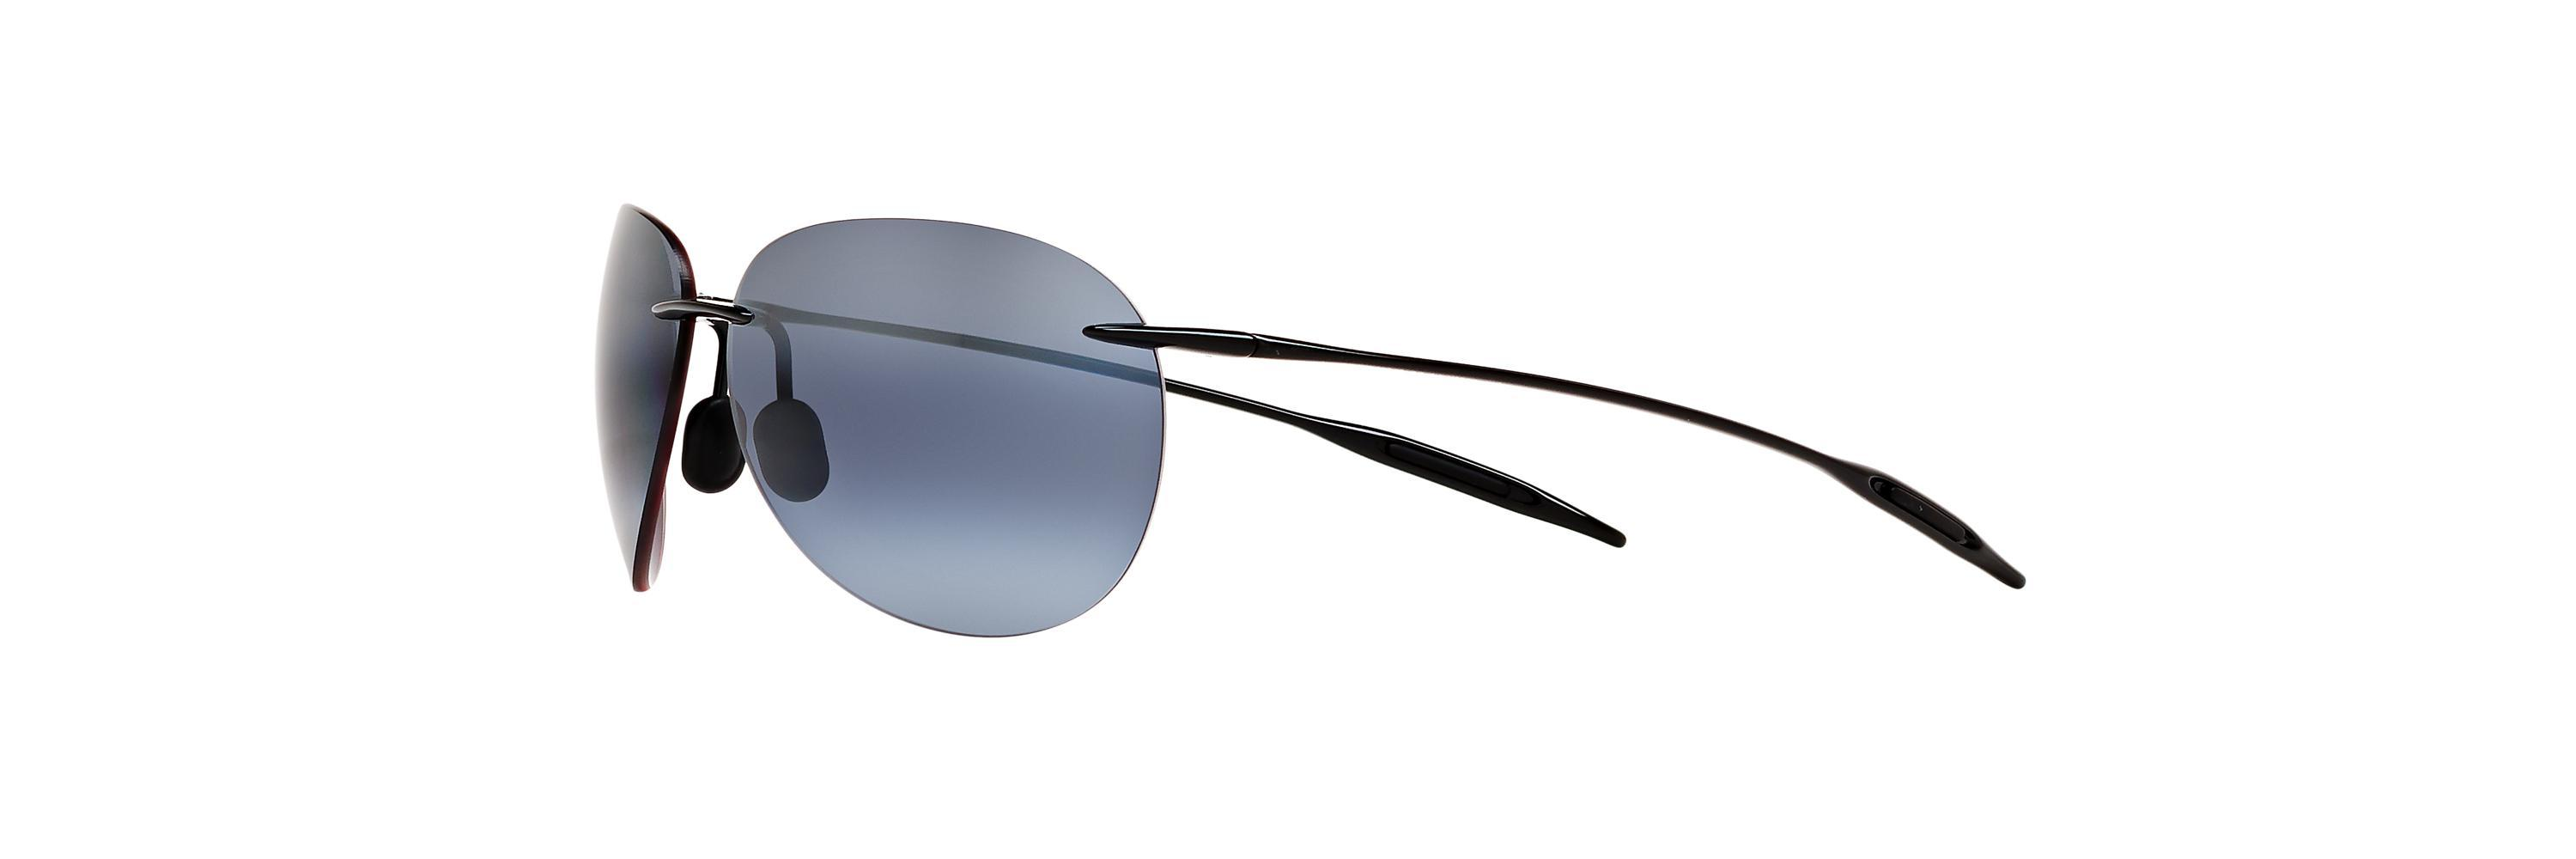 34993632a75a8 Lyst - Maui Jim Mj000351 in Gray